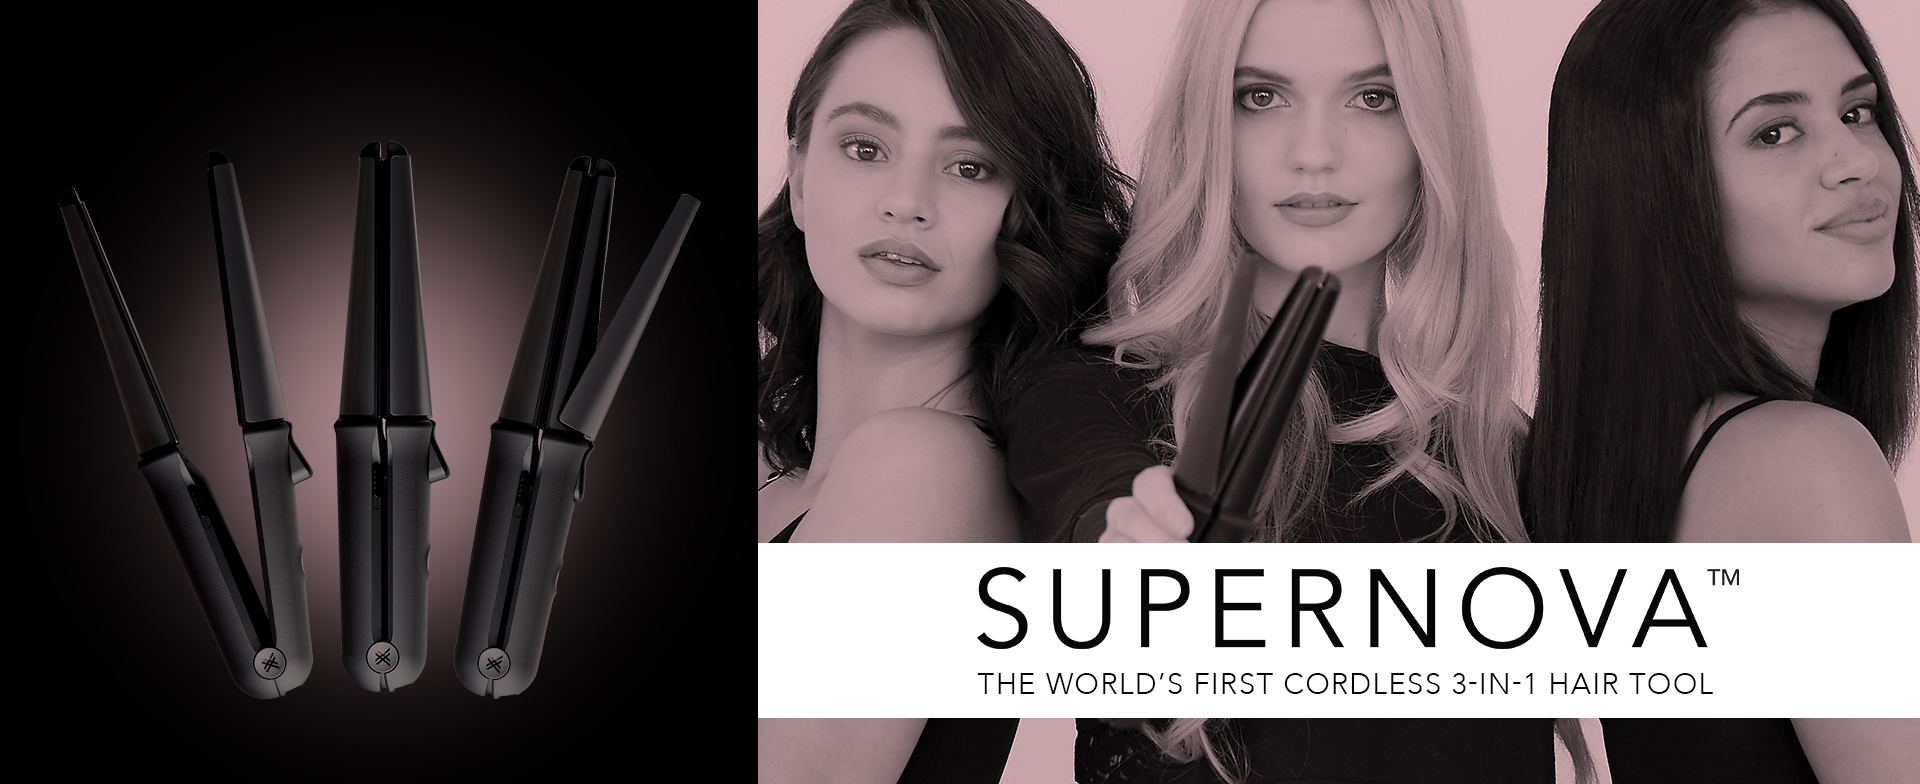 We Are Paradoxx Supernova Cordless 3-in-1 Hair Tool